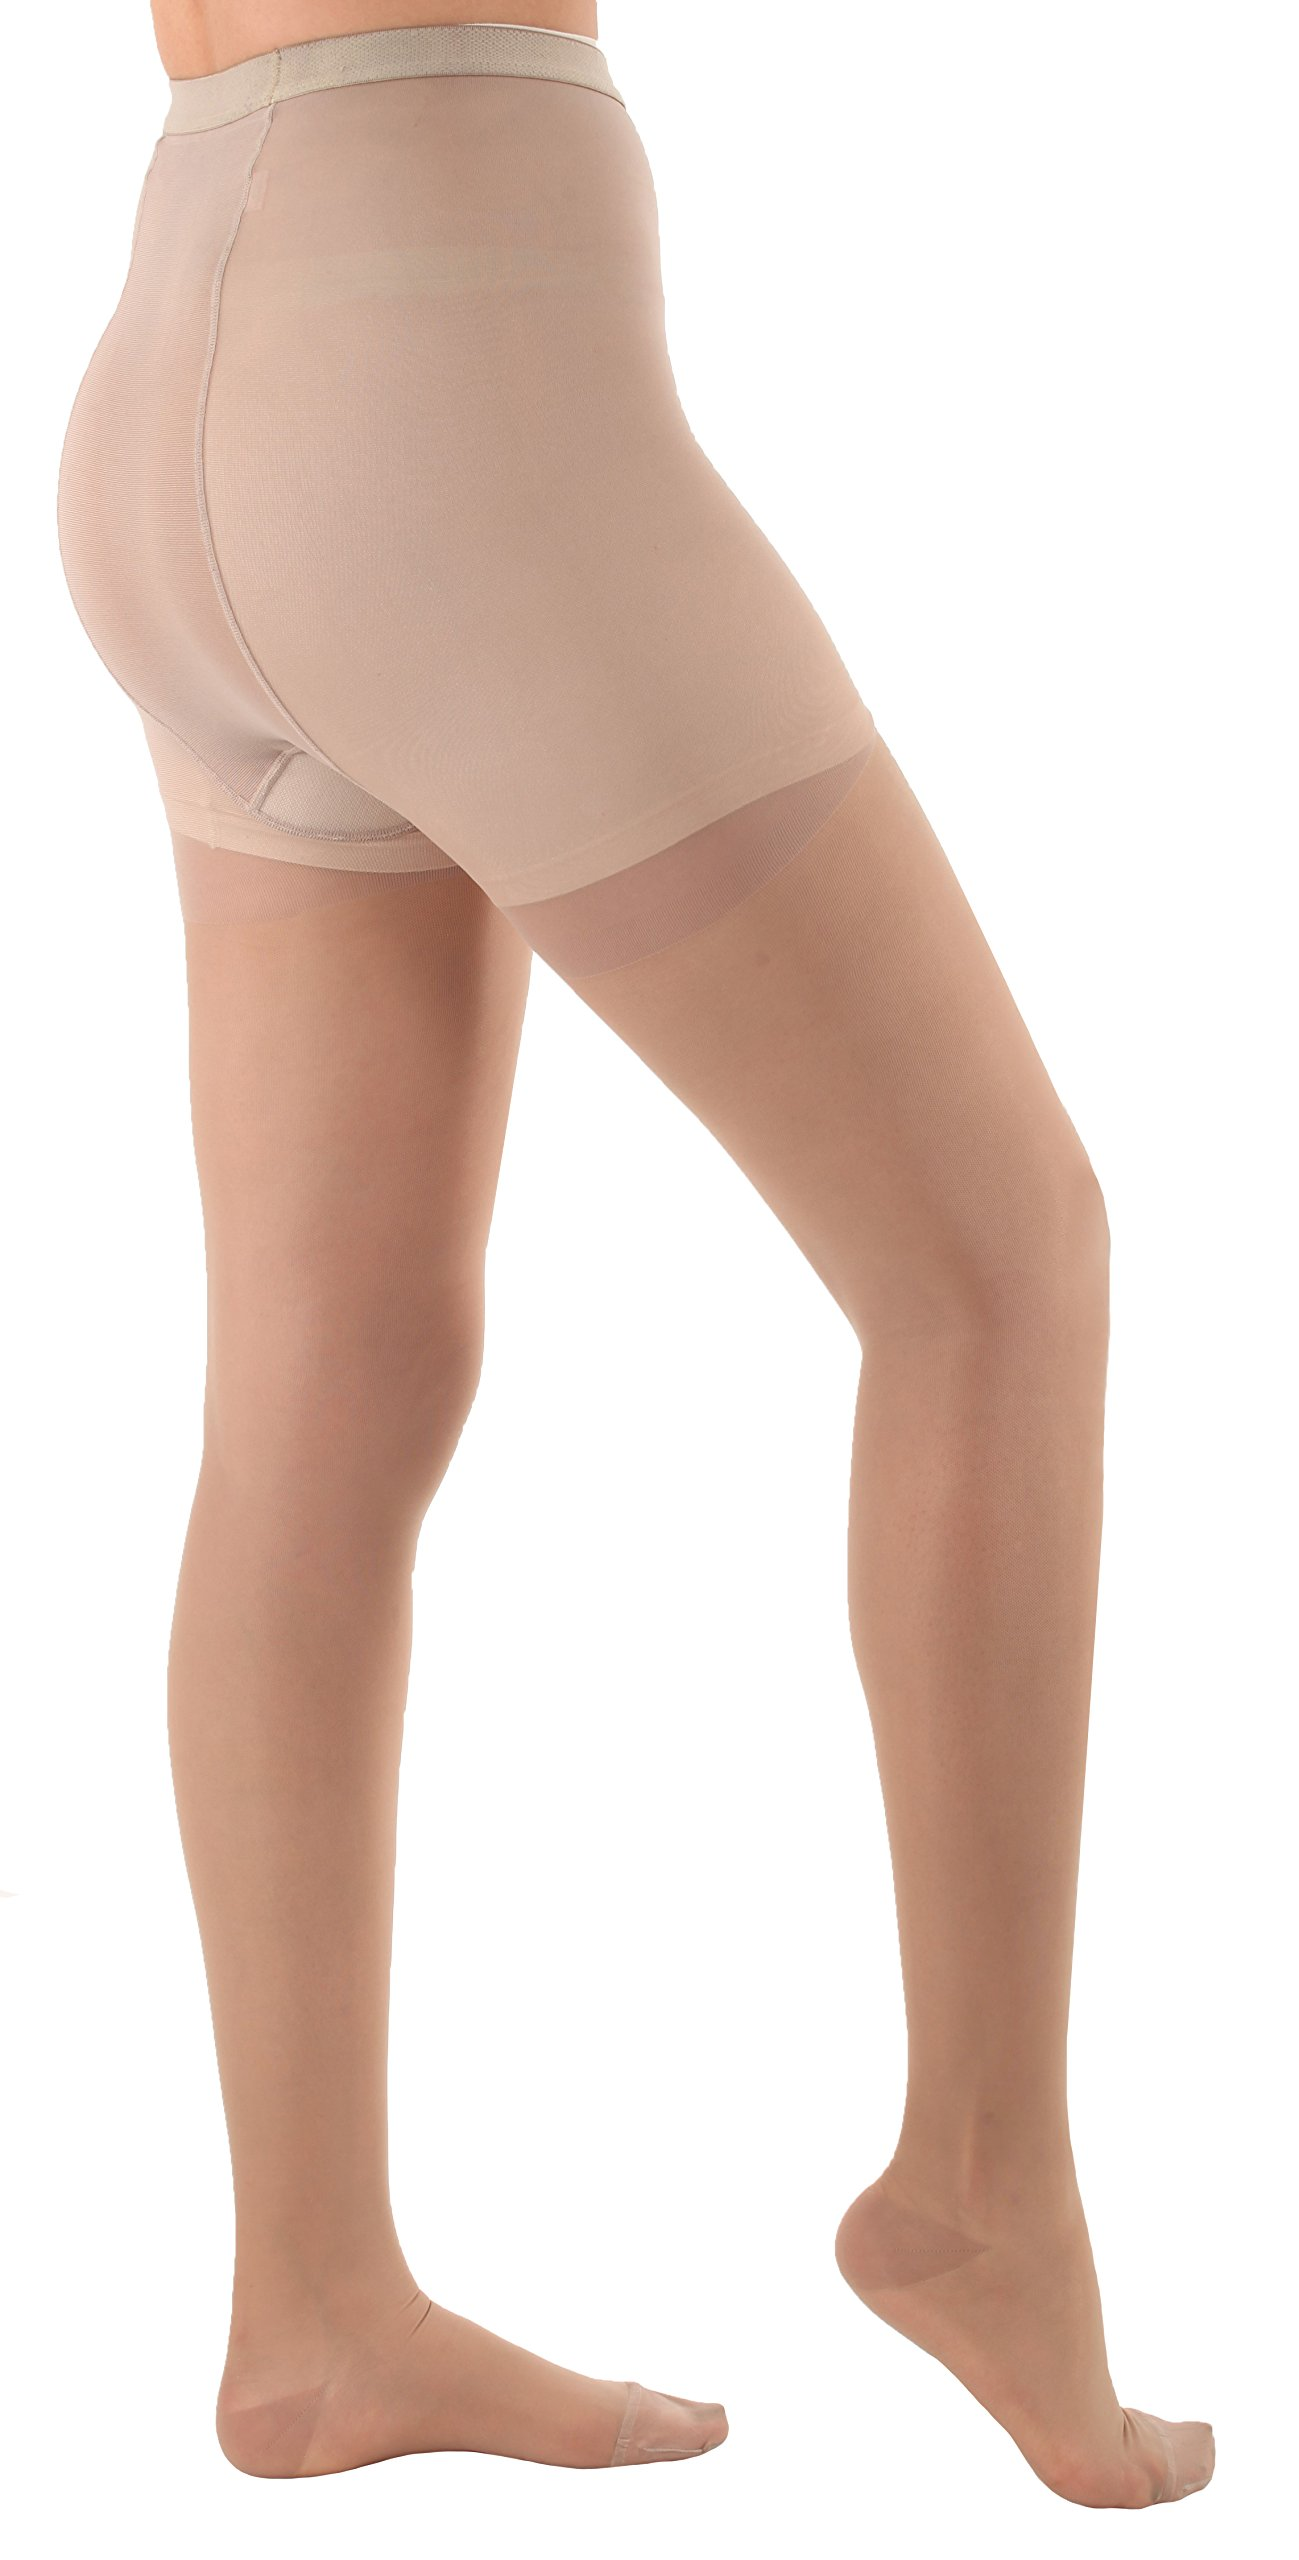 Sheer Compression Firm Support Pantyhose 20-30mmHg - Nude, Medium - Absolute Support Model A207 - Made in USA